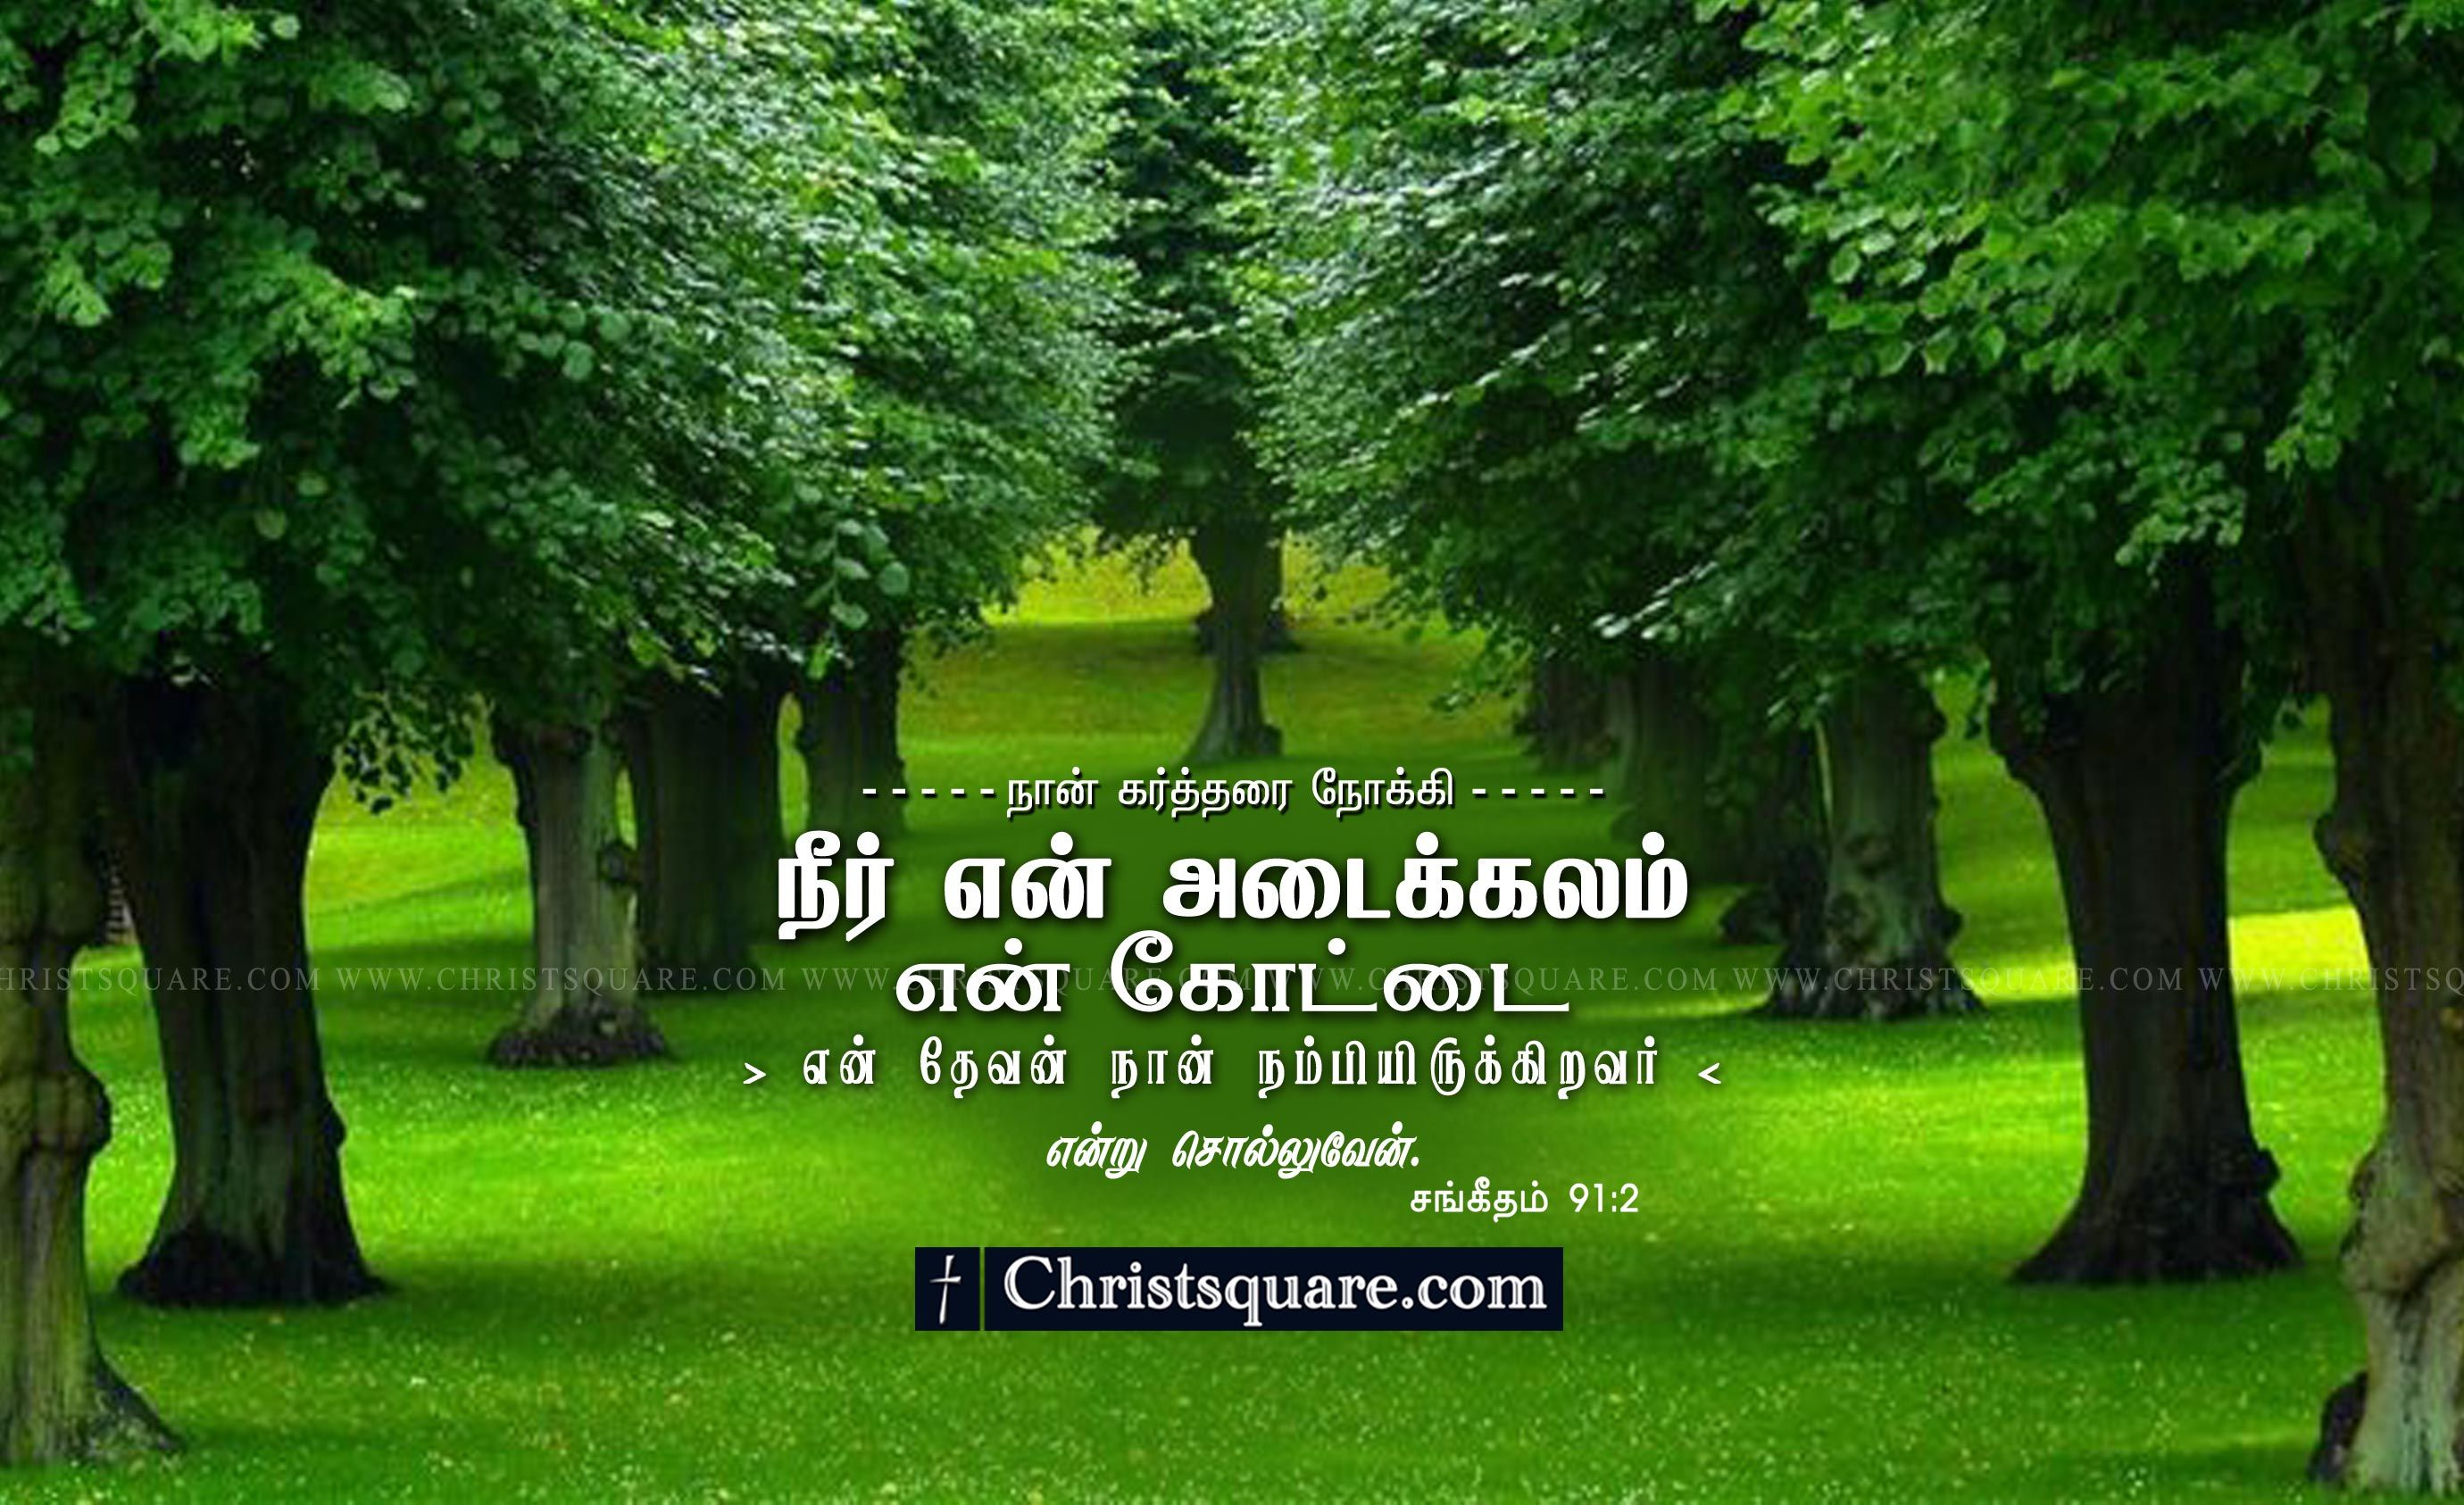 tamil bible words wallpapers - photo #14